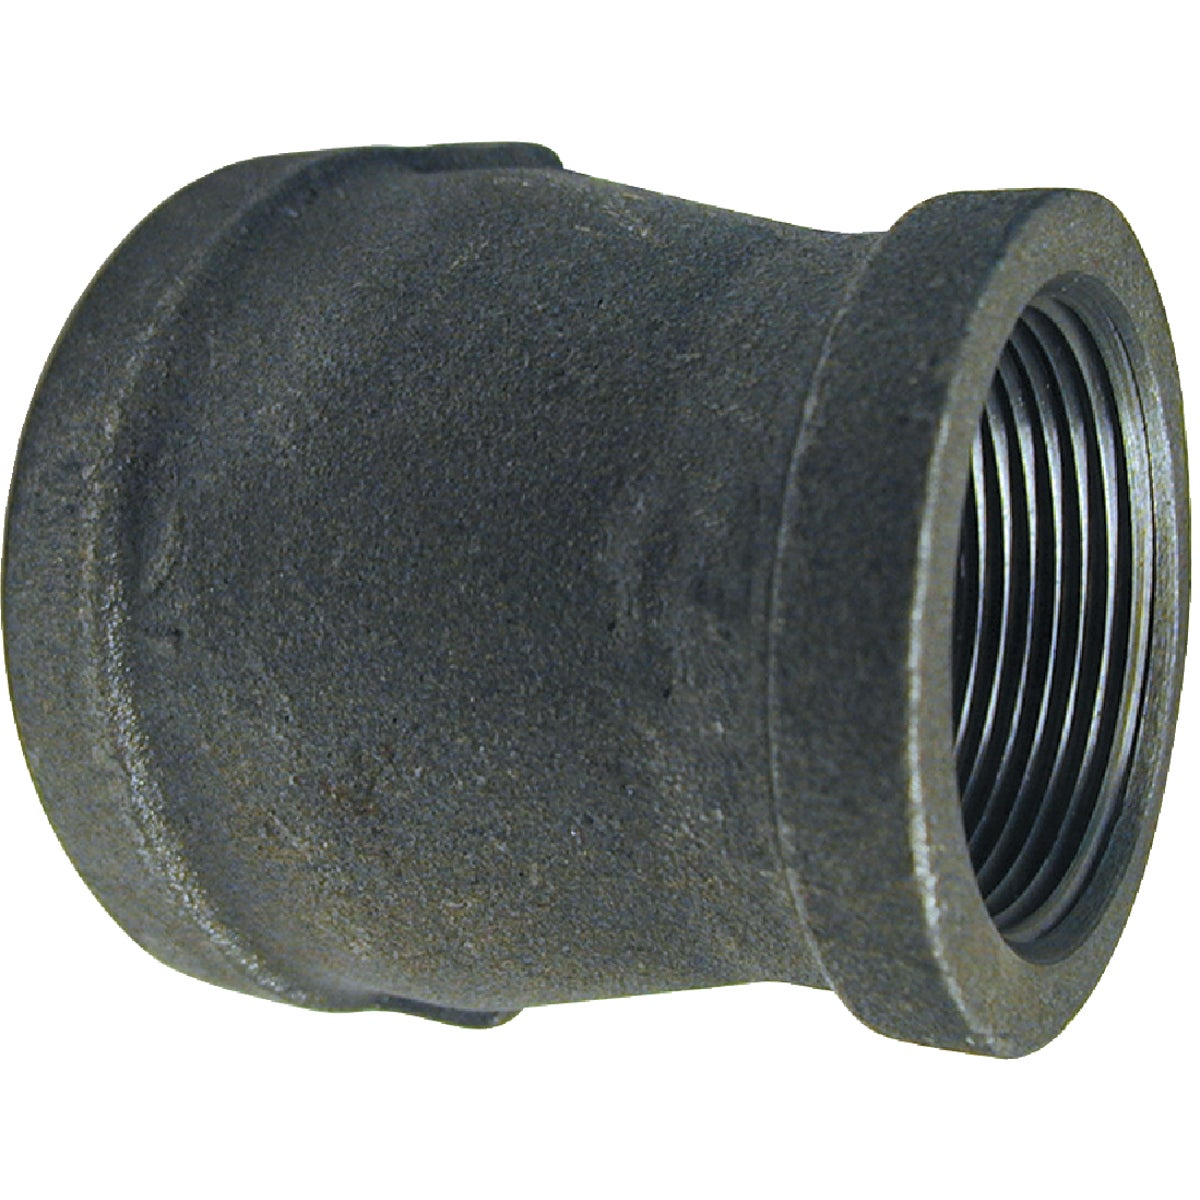 3/4X1/2 BLACK COUPLING - 521-343BG by Mueller B K